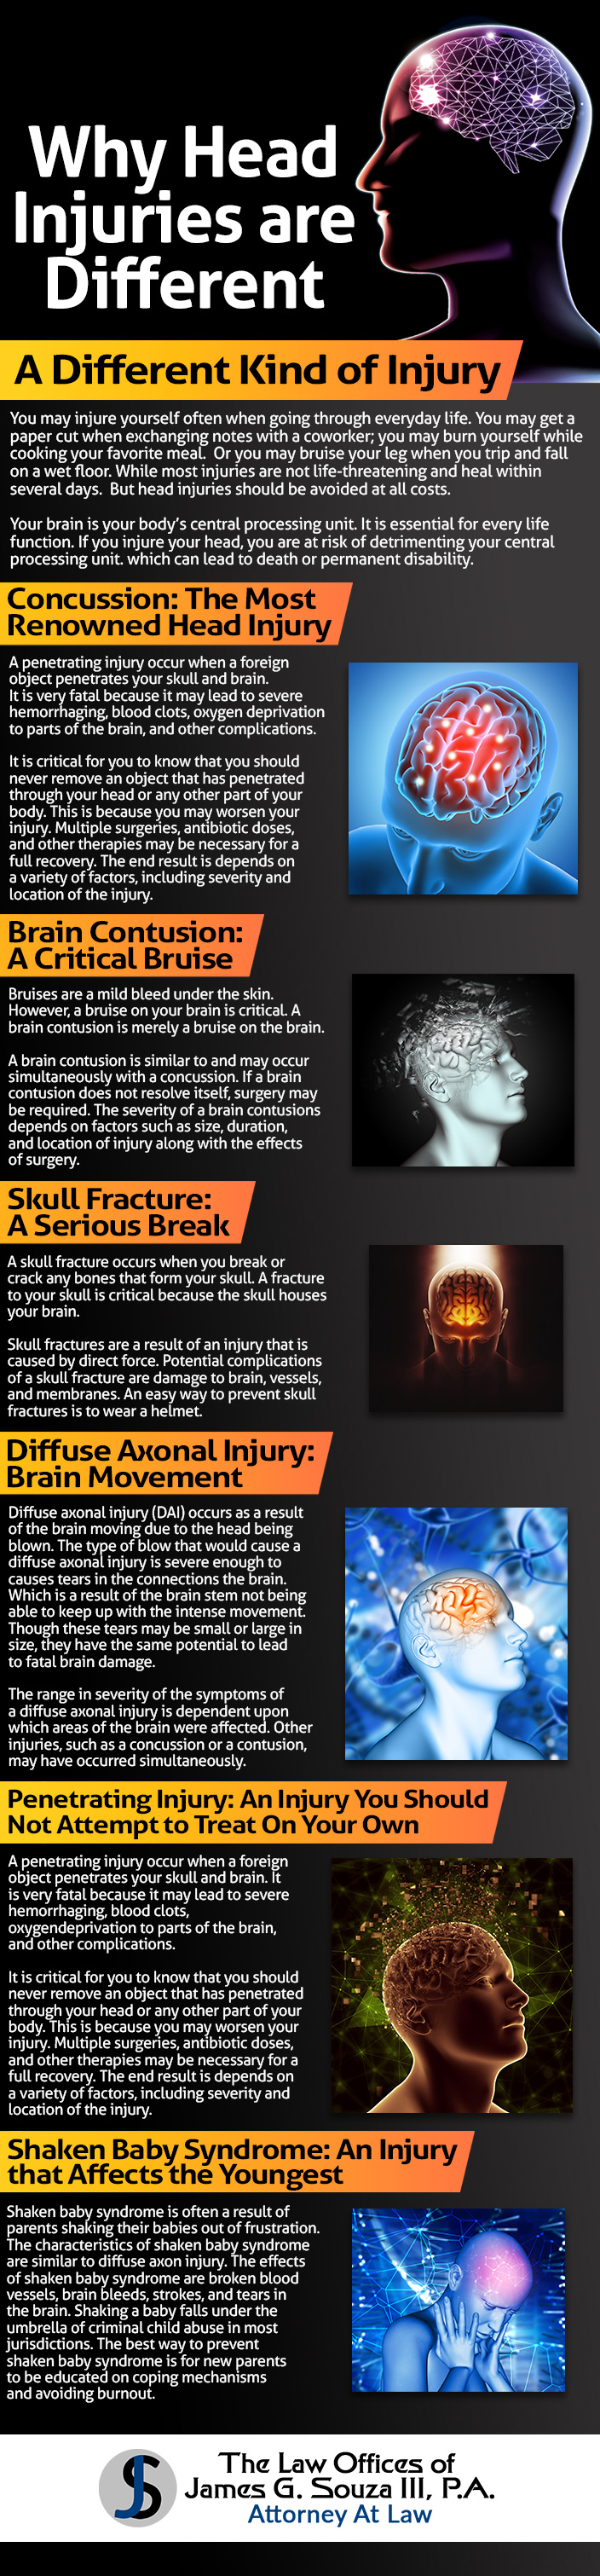 Why Head Injuries are Different